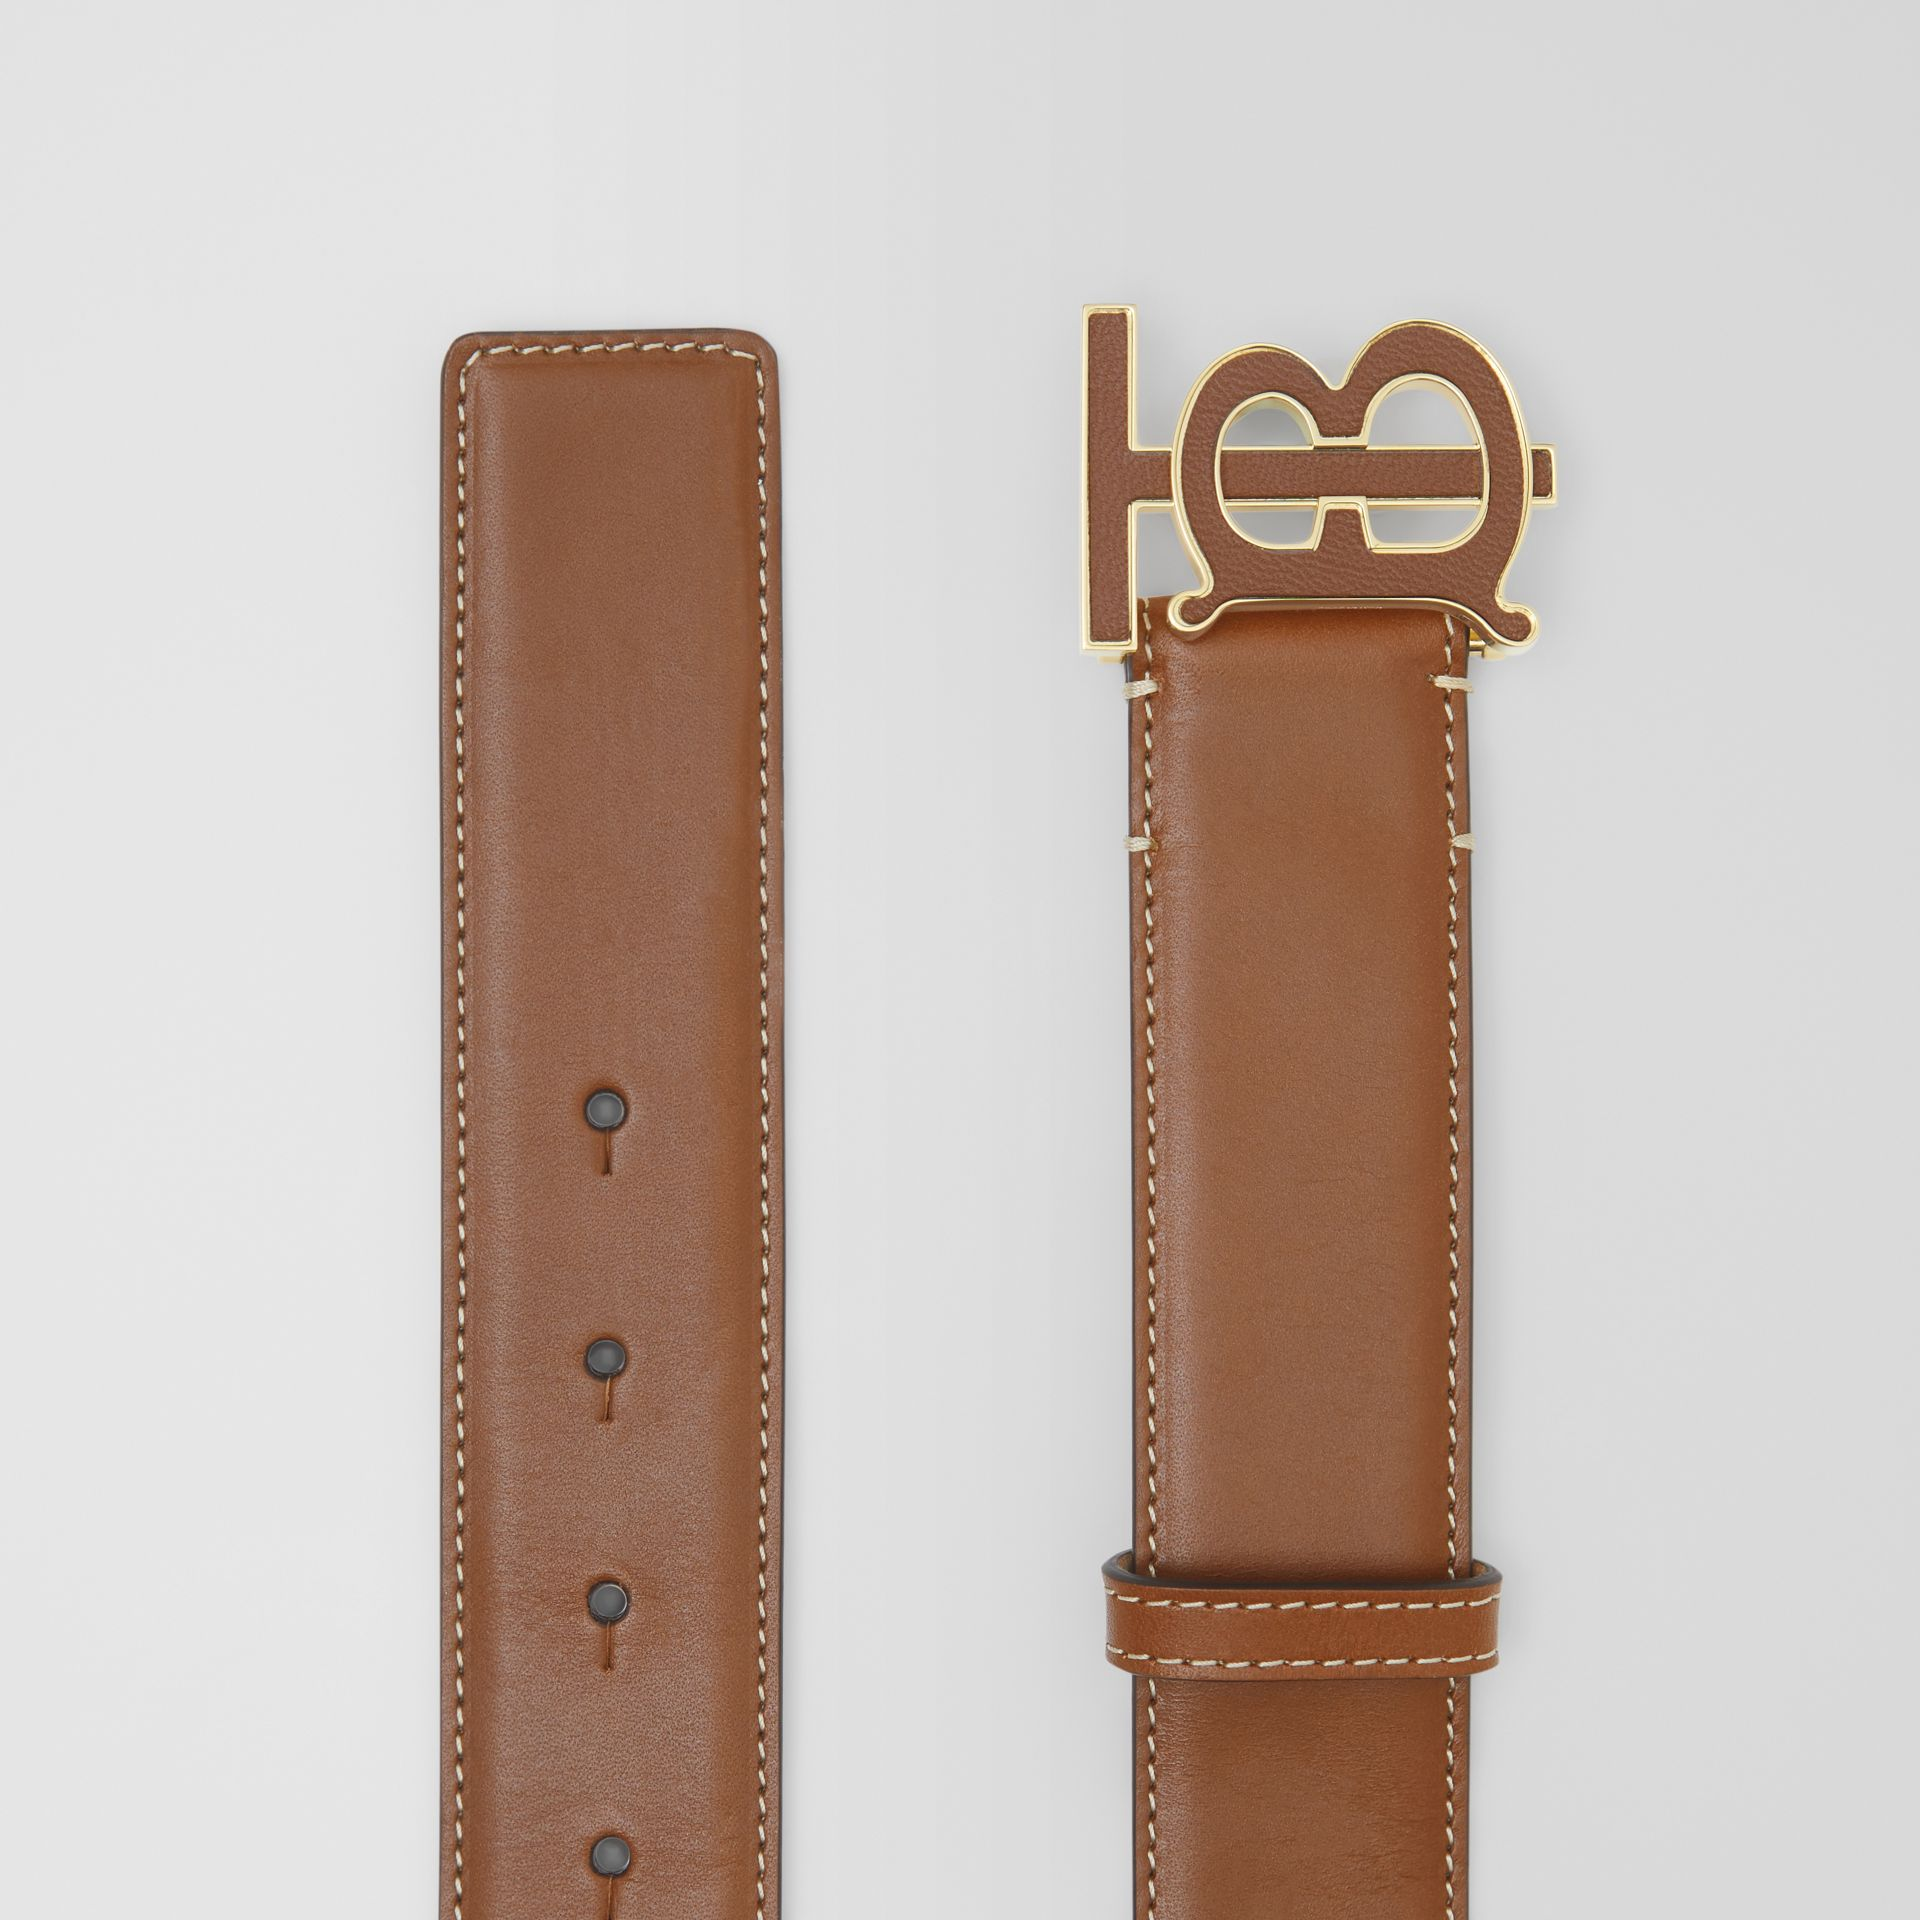 Monogram Motif Leather Belt in Tan - Women | Burberry Canada - gallery image 5